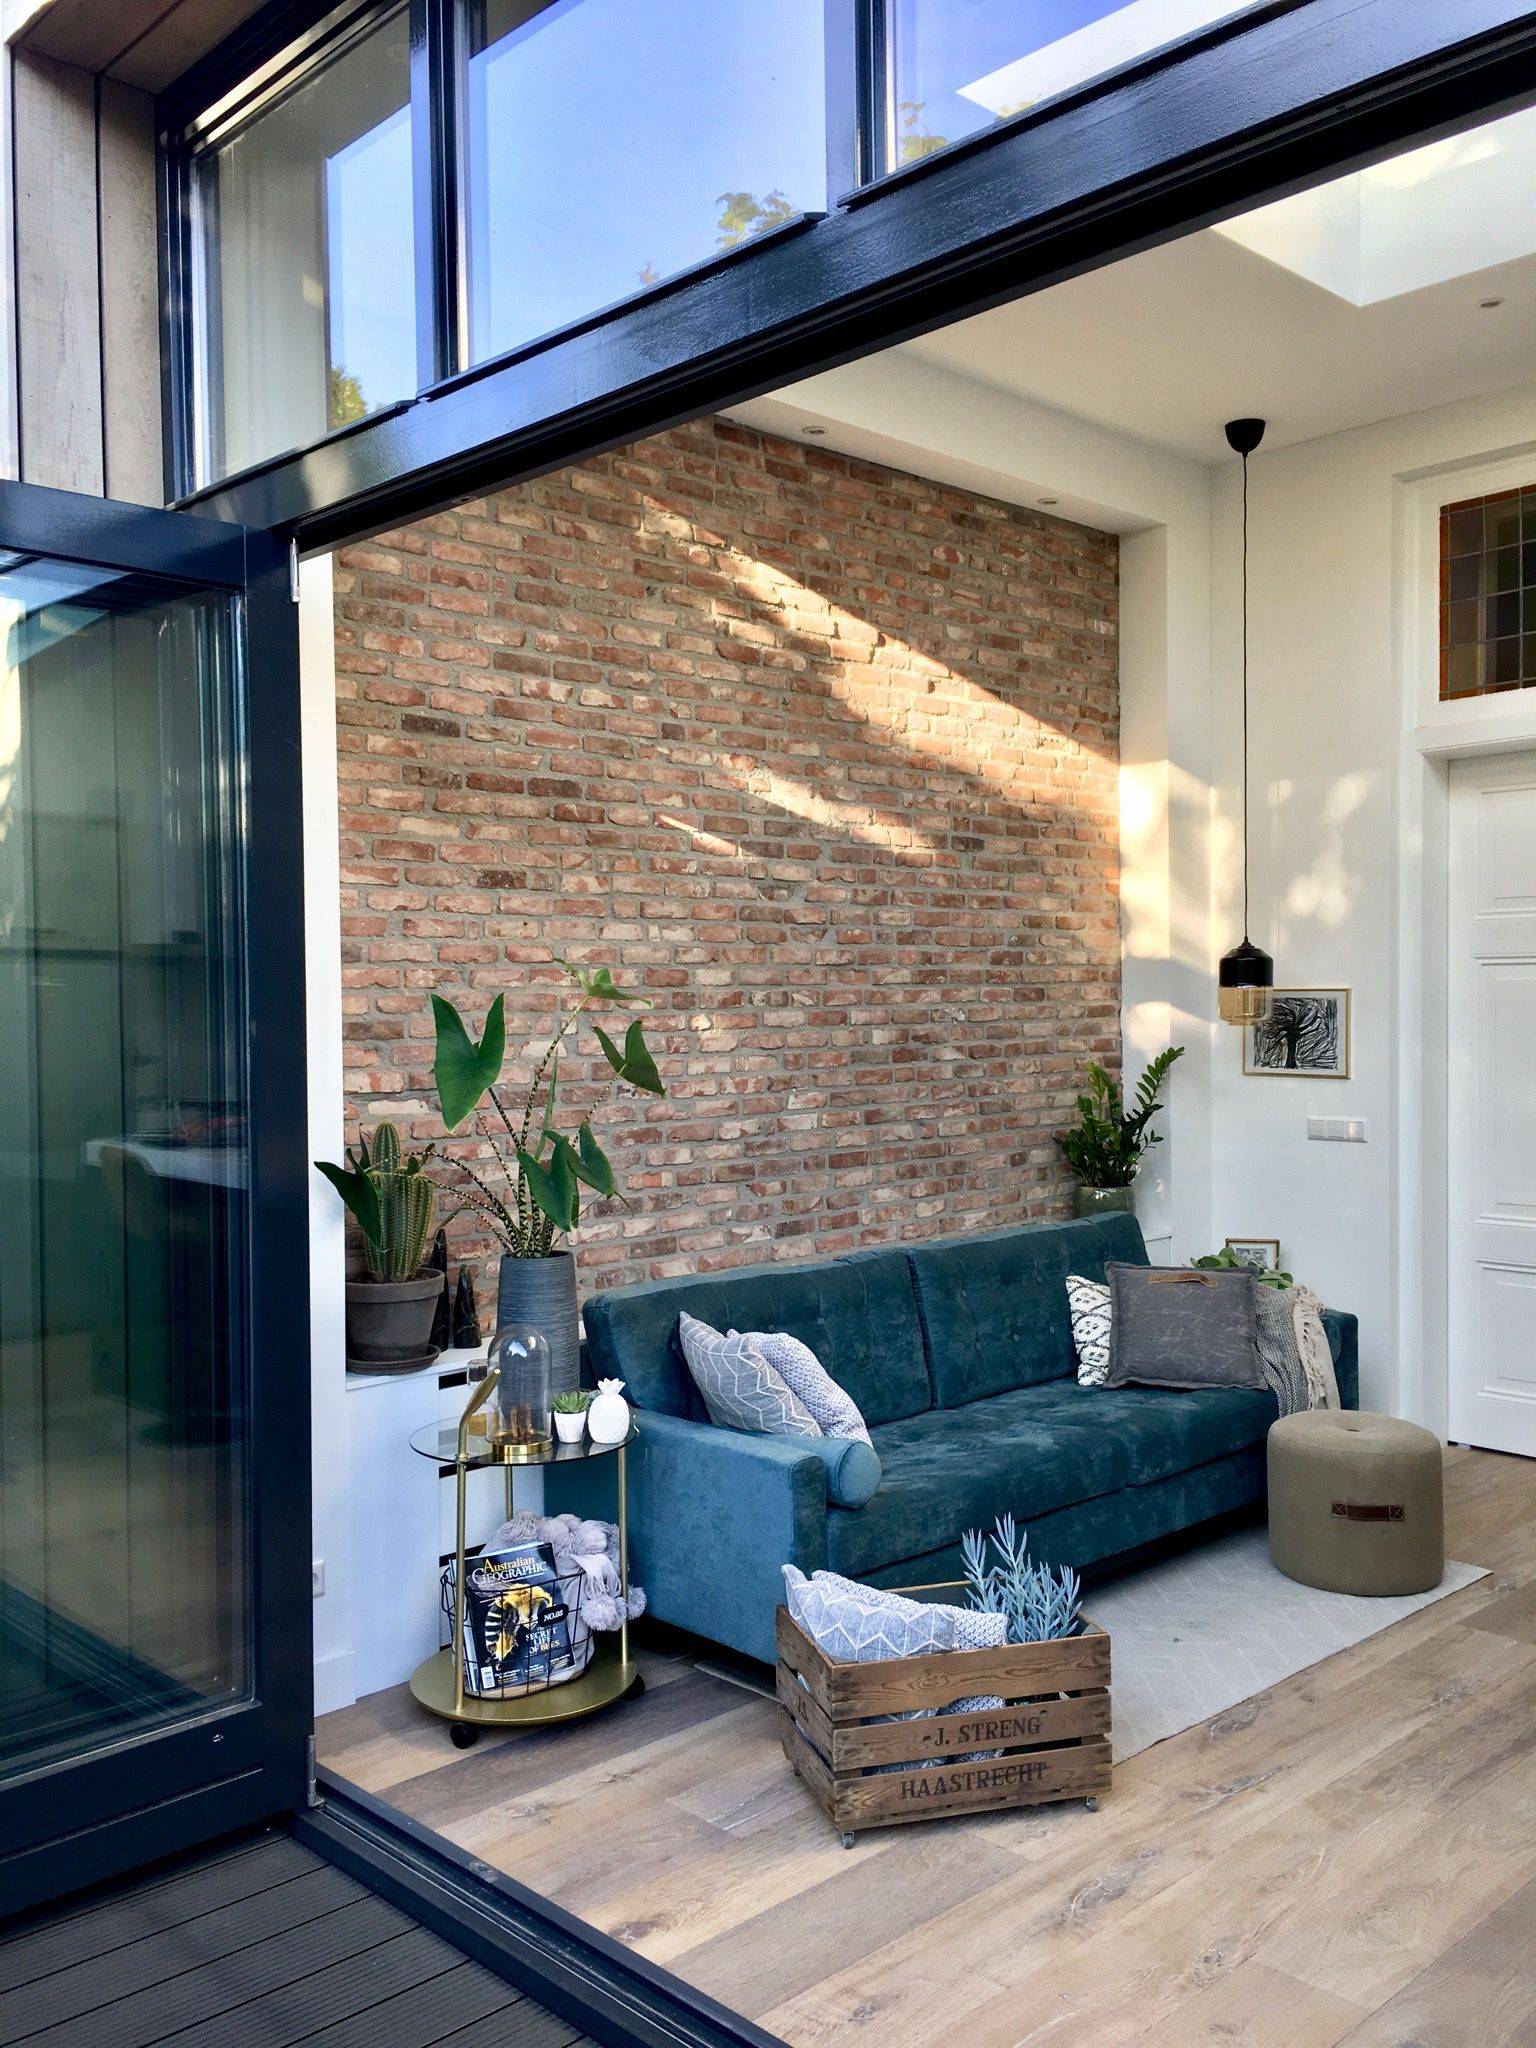 This 130-Year-Old Dutch Home's Reno Is Industrial Boho Chic